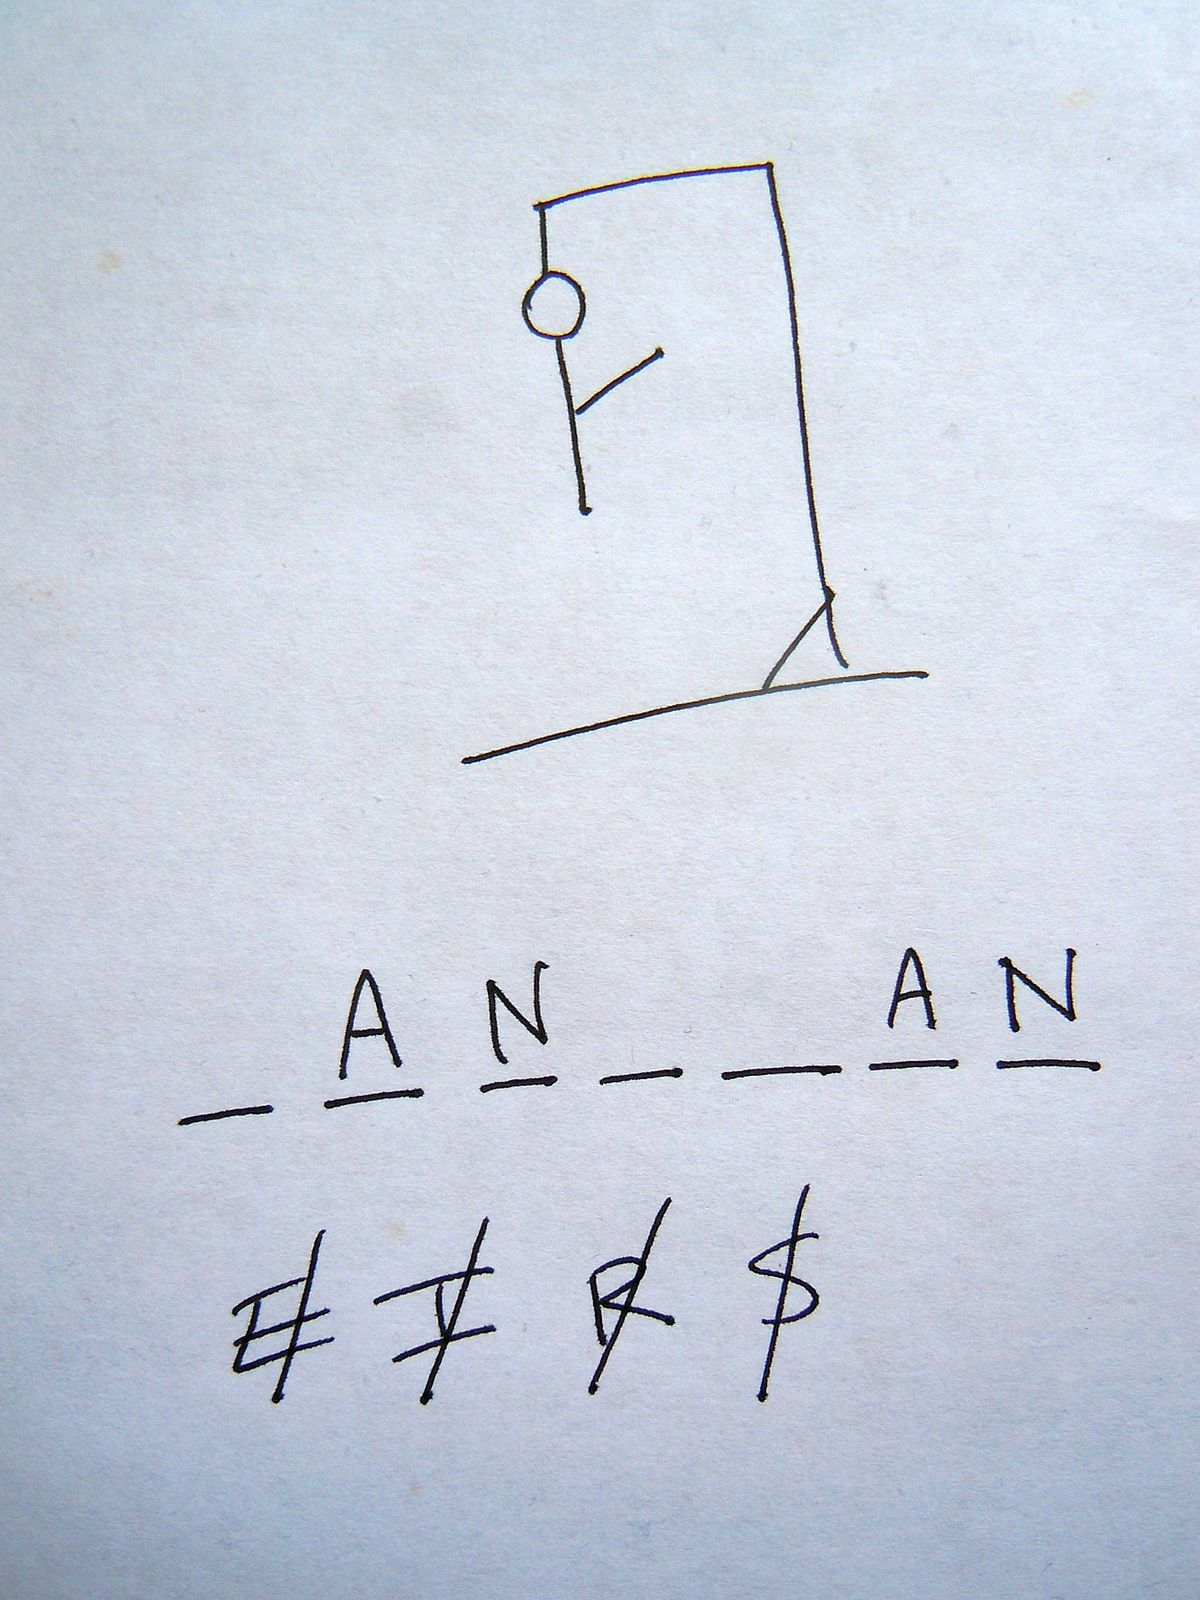 Hangman Game Wikipedia